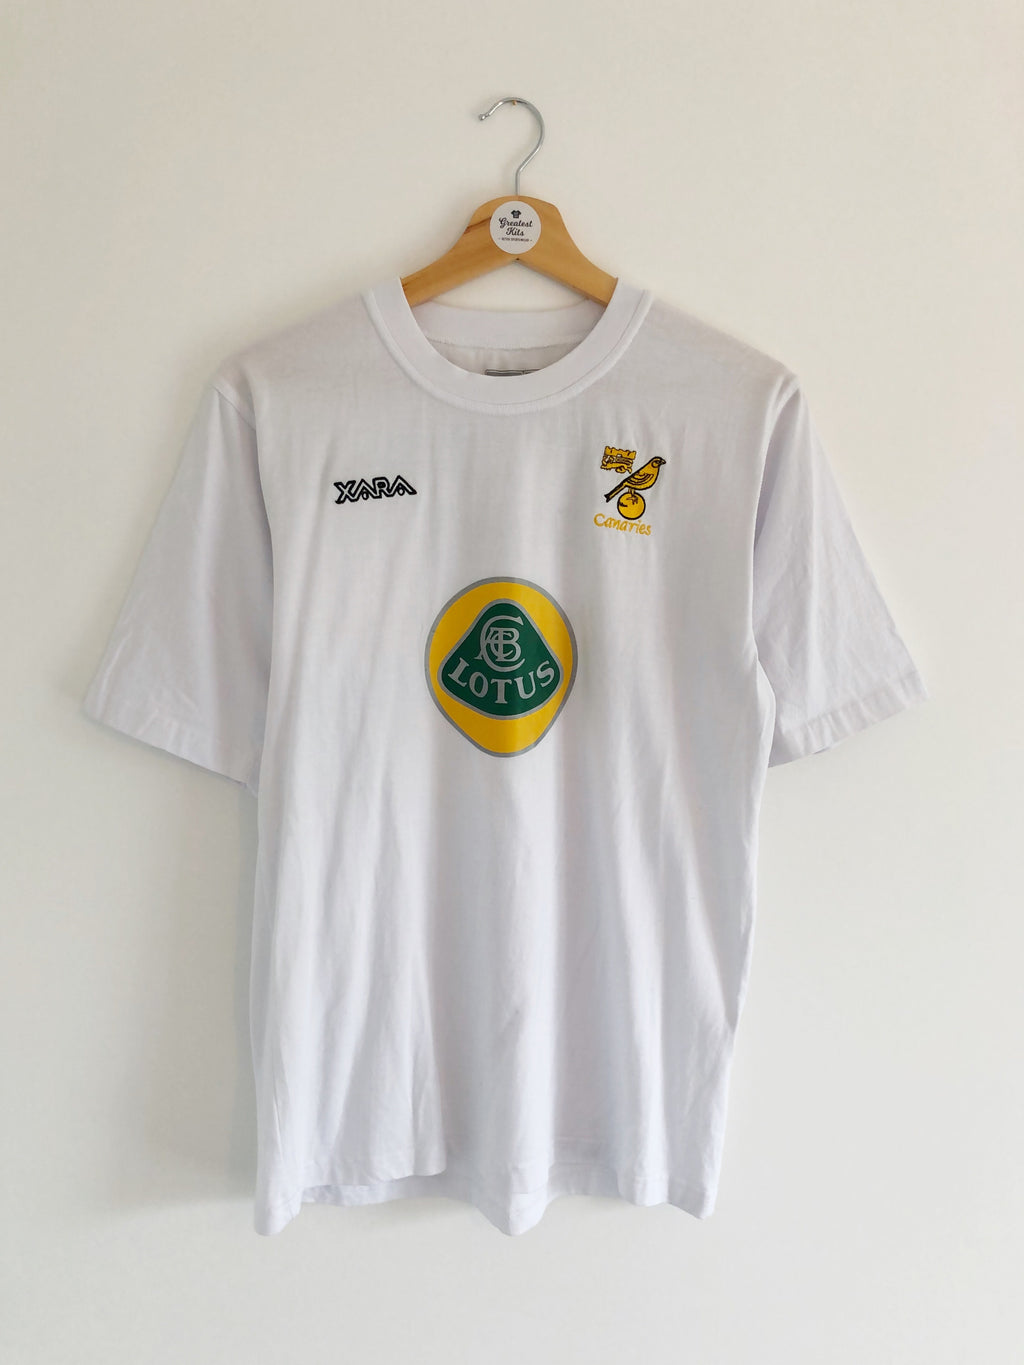 2003/04 Norwich Training T-Shirt (S) 8.5/10